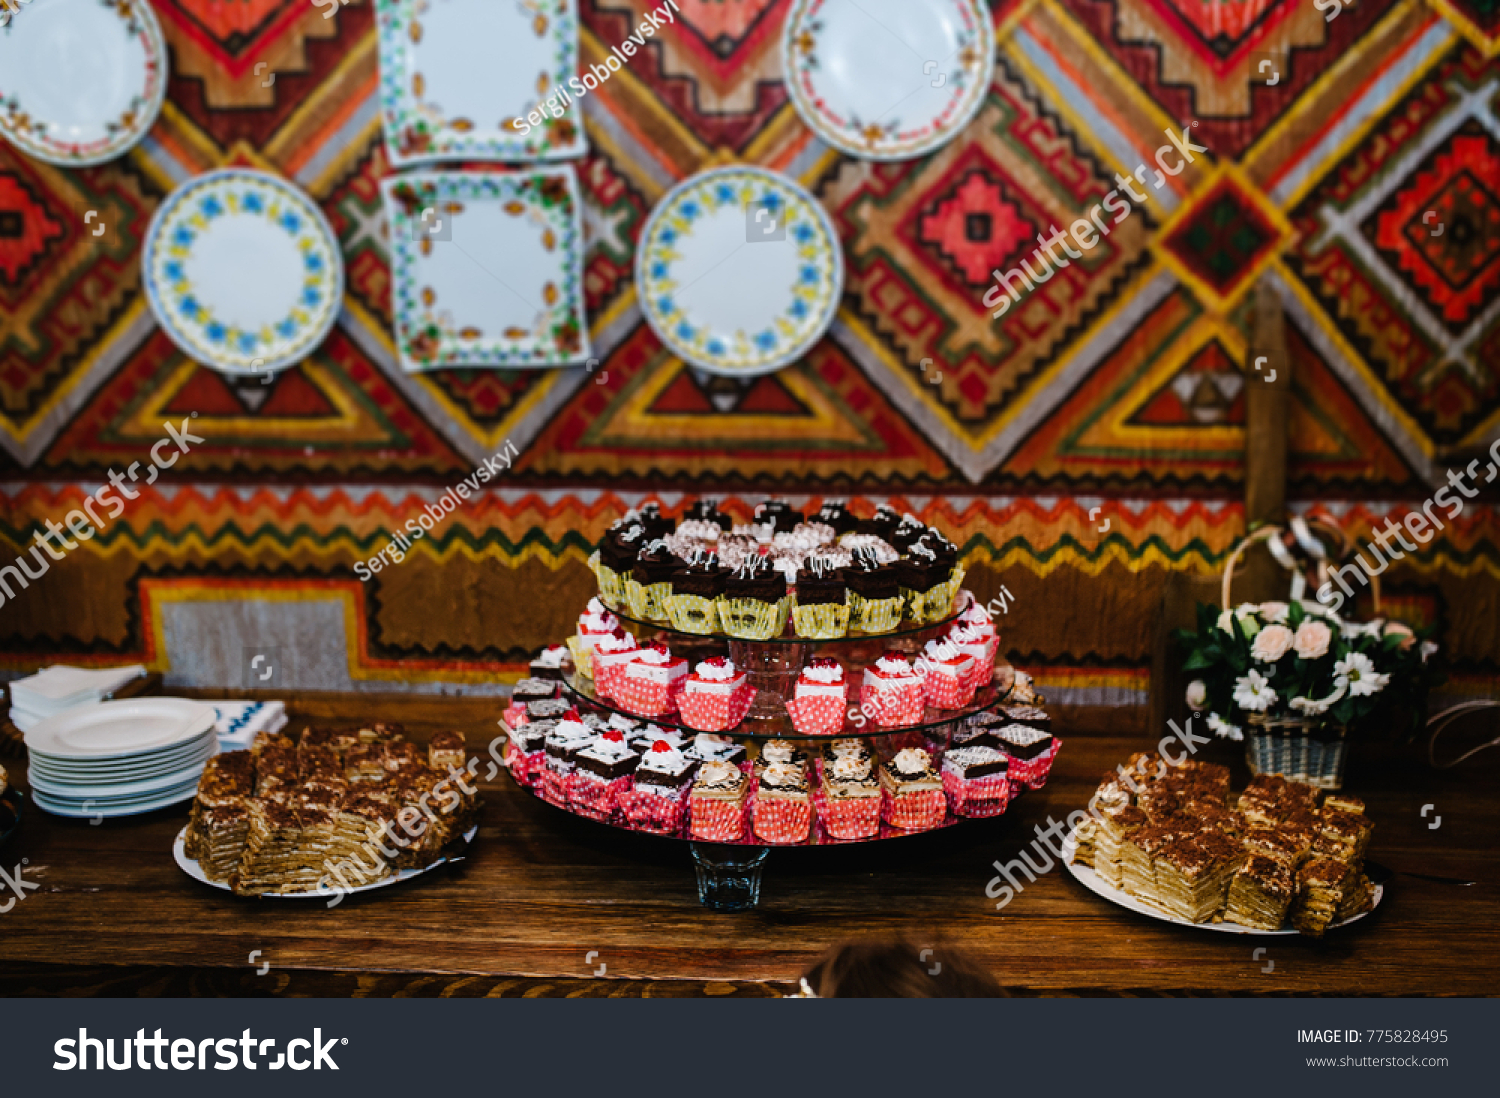 A plates of cakes and muffins with cream with berries. Table with & Sweet Table Plates Cakes Muffins Cream Stock Photo (Royalty Free ...